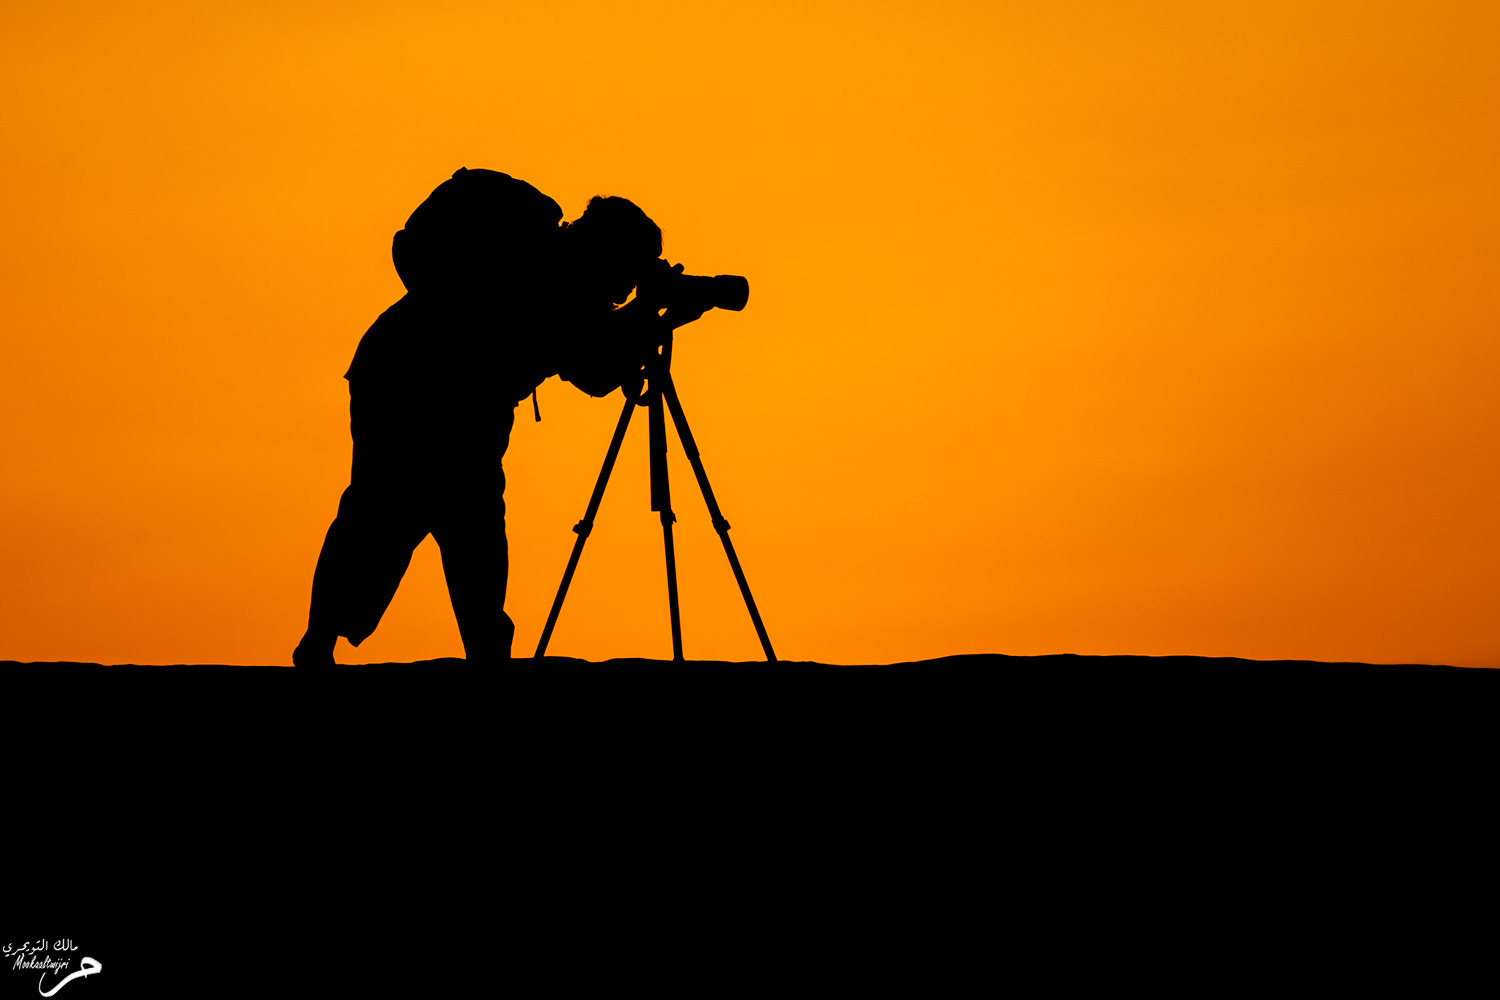 Photograph photographer Appointed by mooka altwijri on 500px